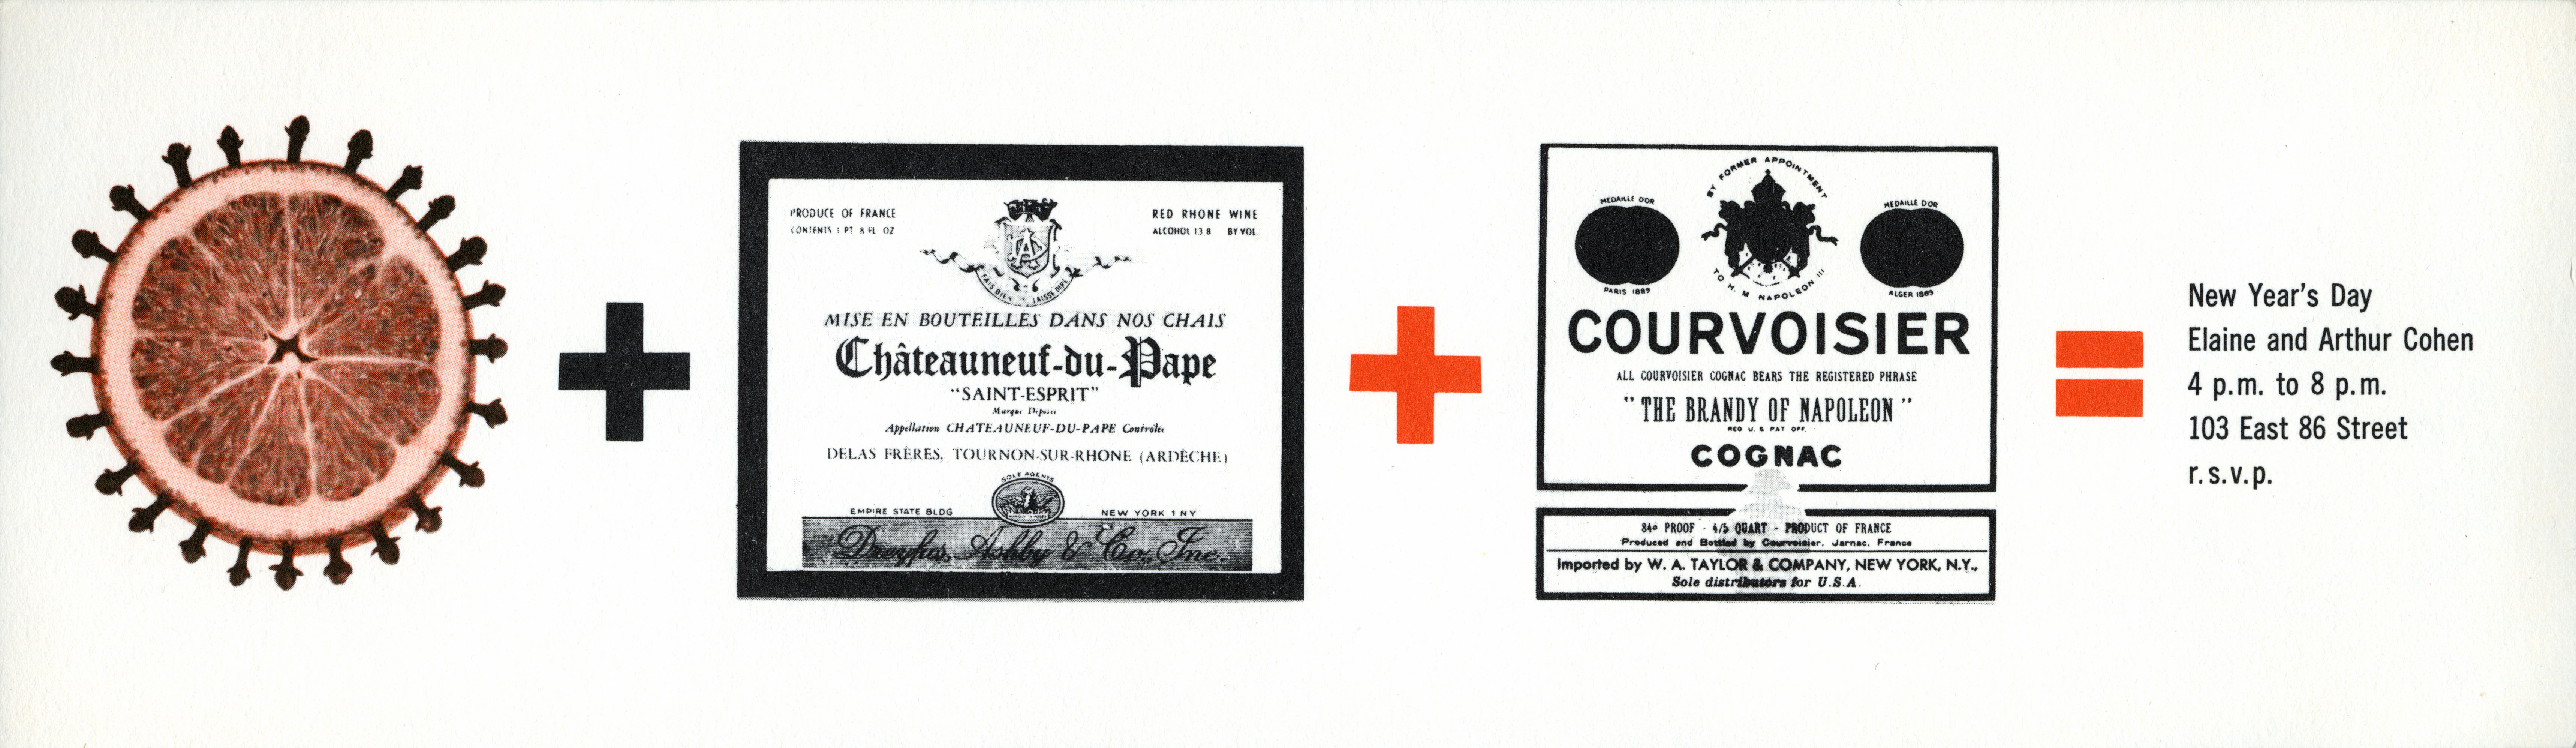 A long white card depicting dried orange slice studded with cloves, a plus sign, a wine label, an plus sign, a Courvoisier cognac label, an equals sign, time and location of party